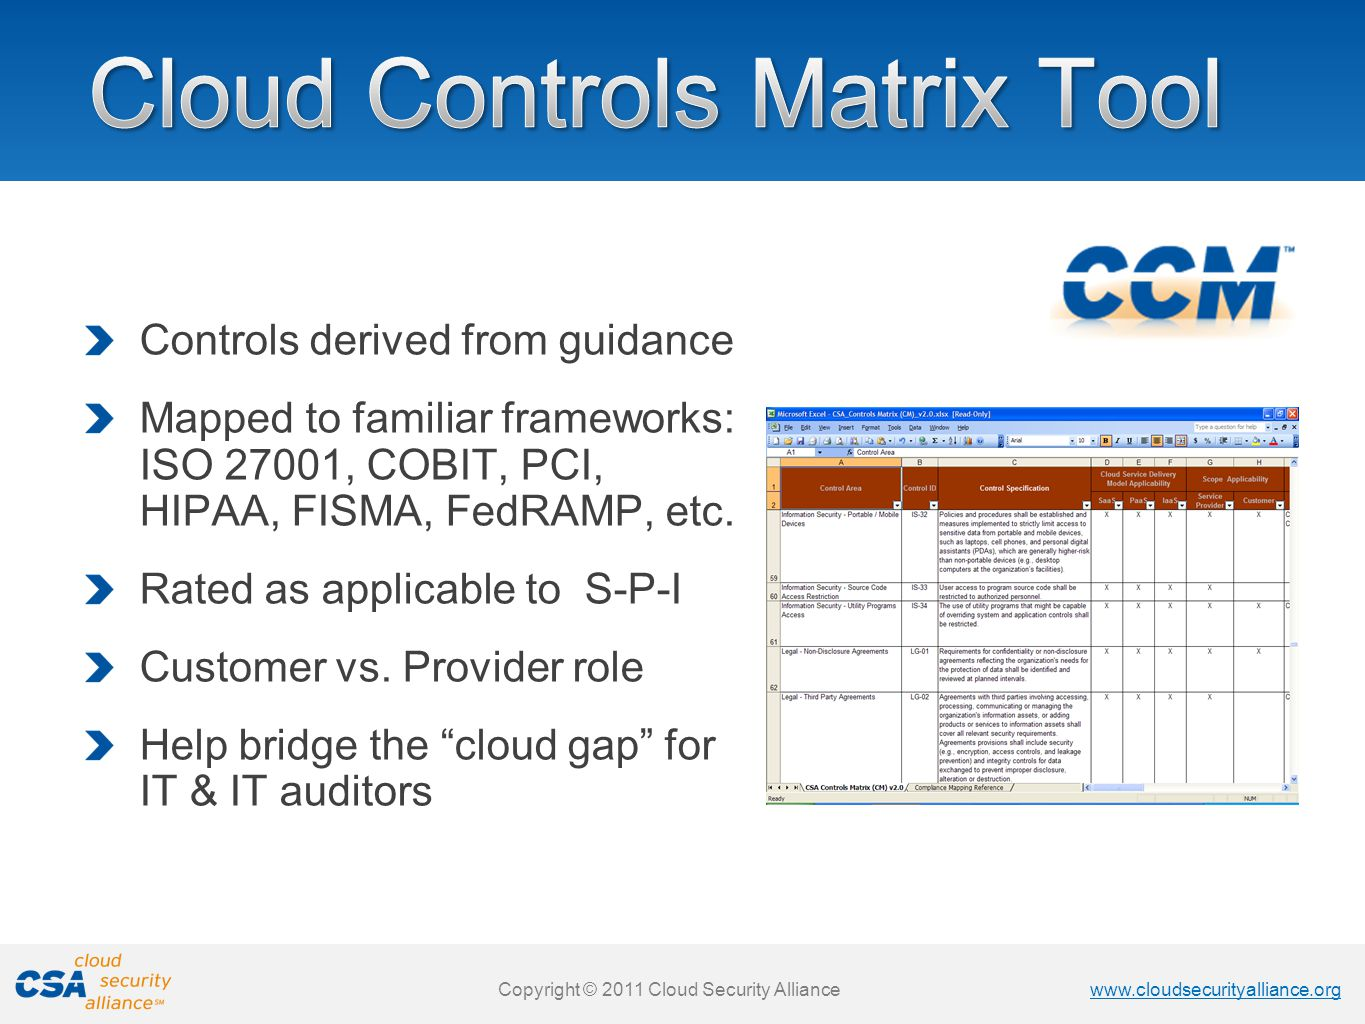 www.cloudsecurityalliance.org Copyright © 2011 Cloud Security Alliance www.cloudsecurityalliance.org Copyright © 2011 Cloud Security Alliance Research tools and processes to perform shared assessments of cloud providers Integrated with Controls Matrix Version 1 CAI Questionnaire released Oct 2010, approximately 140 provider questions to identify presence of security controls or practices Use to assess cloud providers today, procurement negotiation, contract inclusion, quantify SLAs